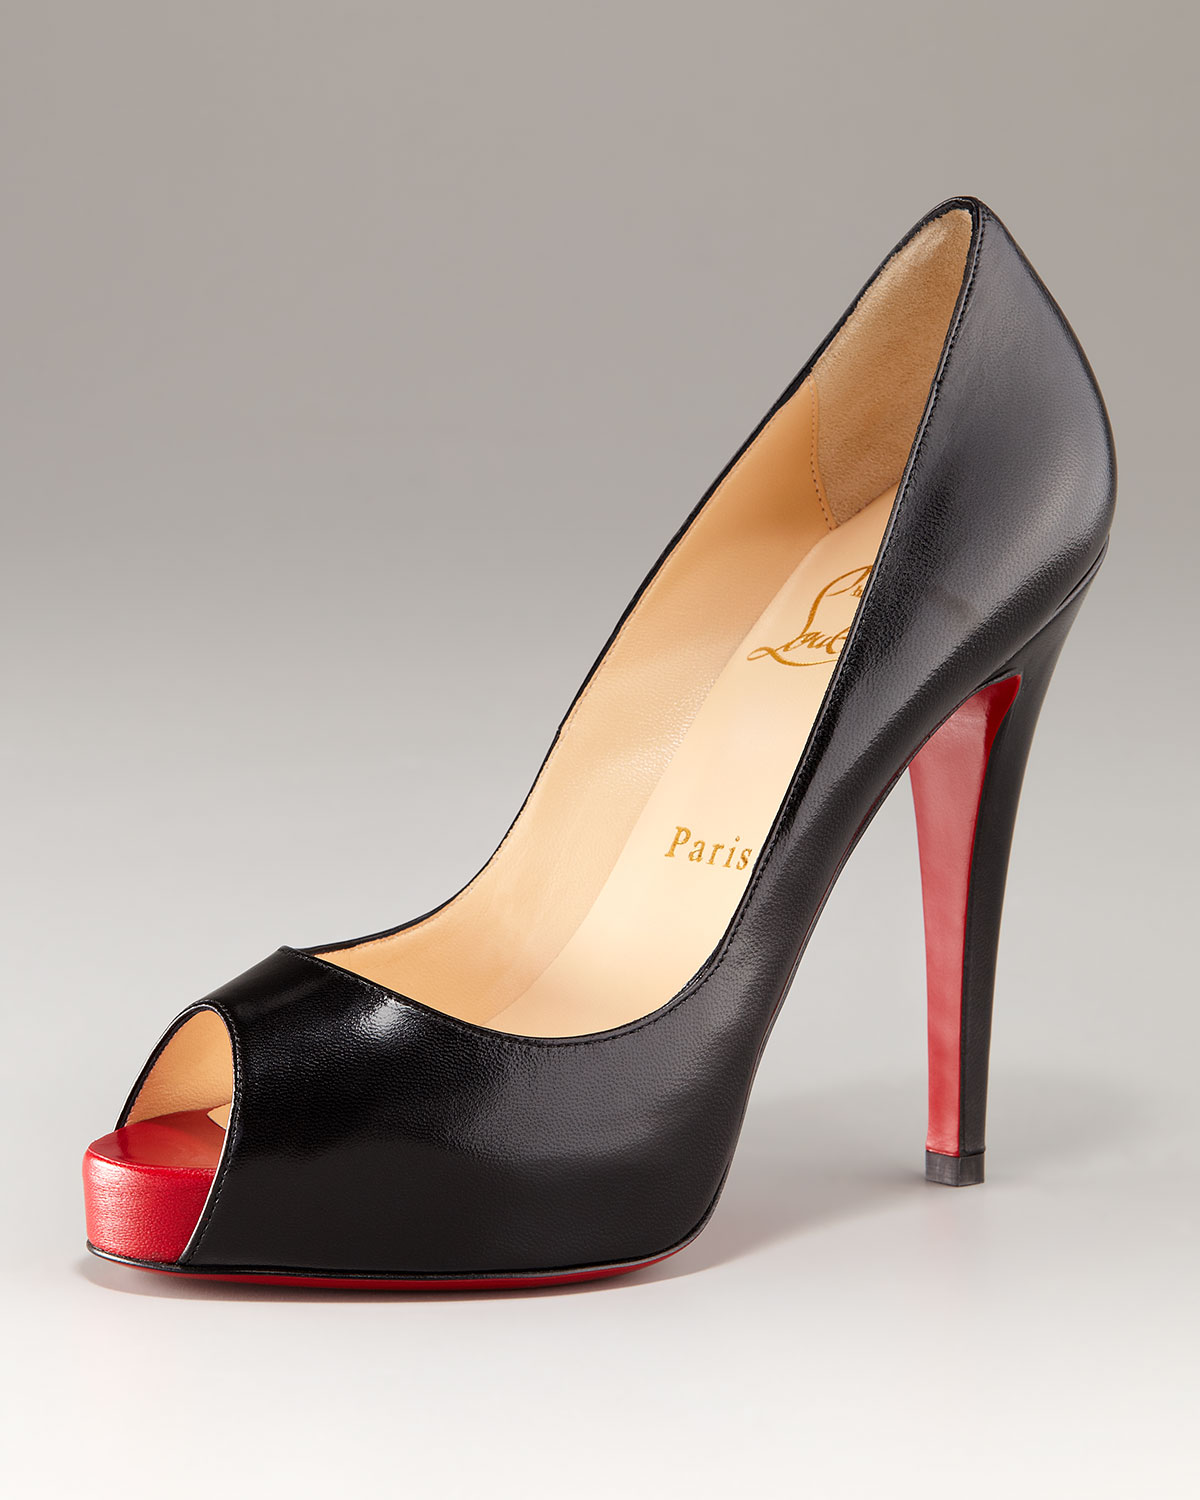 free shipping pre order affordable cheap price Christian Louboutin Leather Peep-Toe Platforms best sale online I75zh8Env